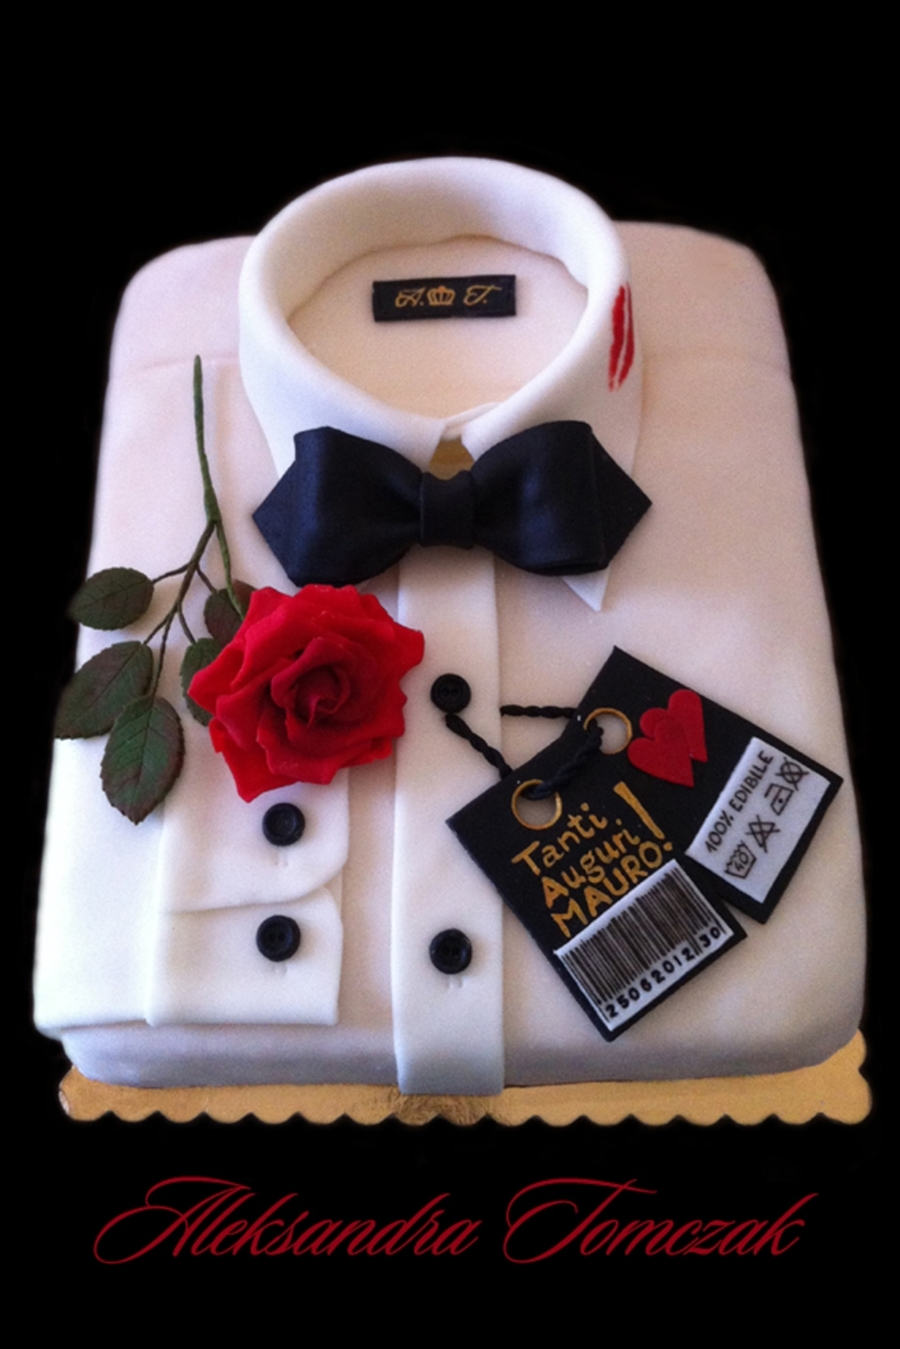 The Most Luxurious Birthday Cake For Him